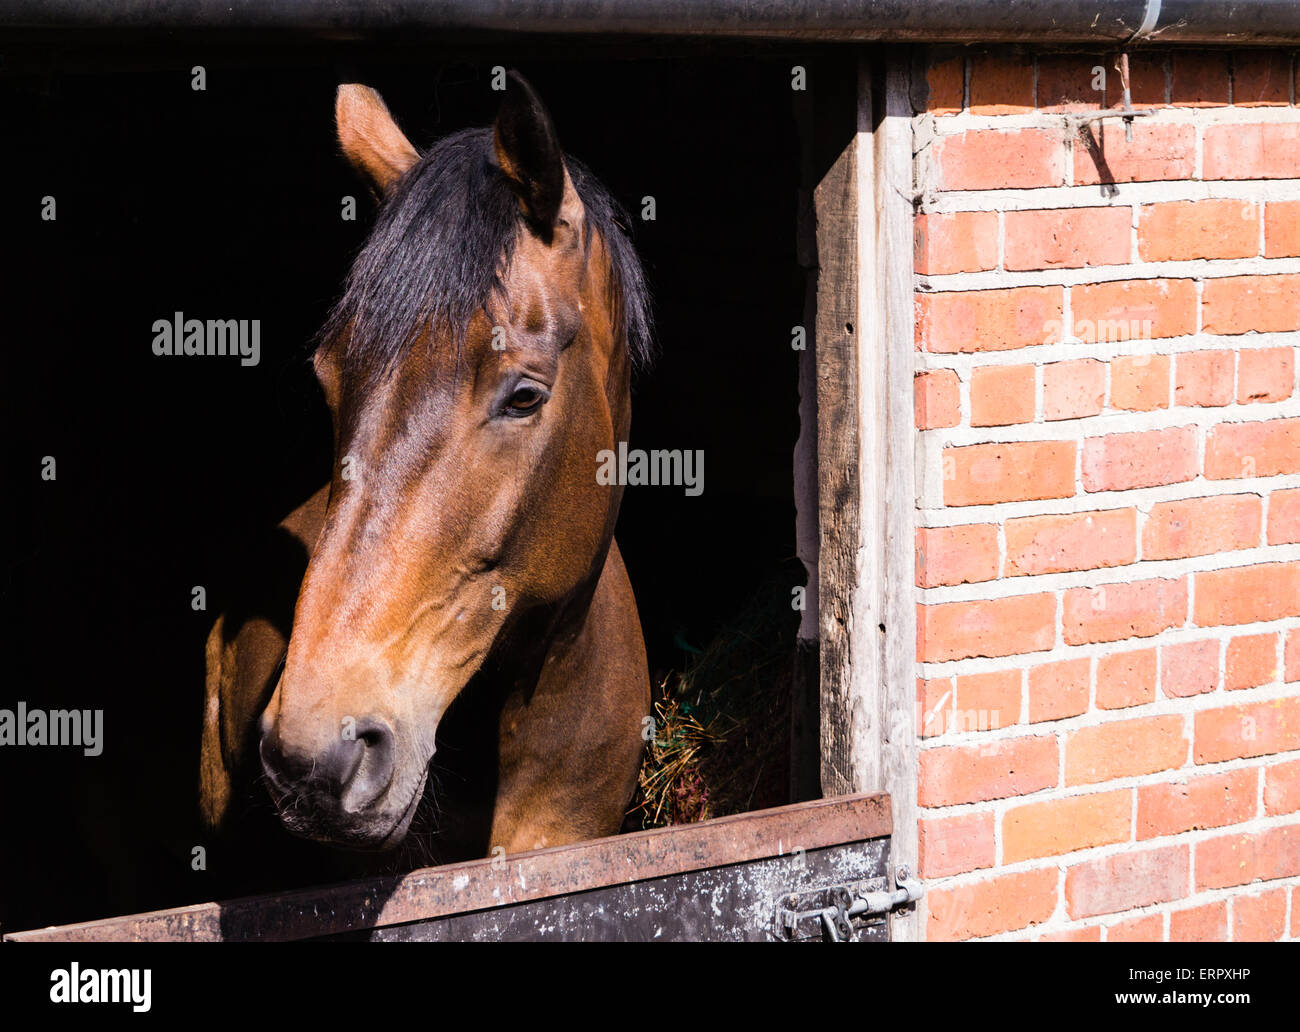 Close up of bay horse in brick-built stable. Riding school, Bleach Farm, Stamford Bridge, North Yorkshire, England, - Stock Image